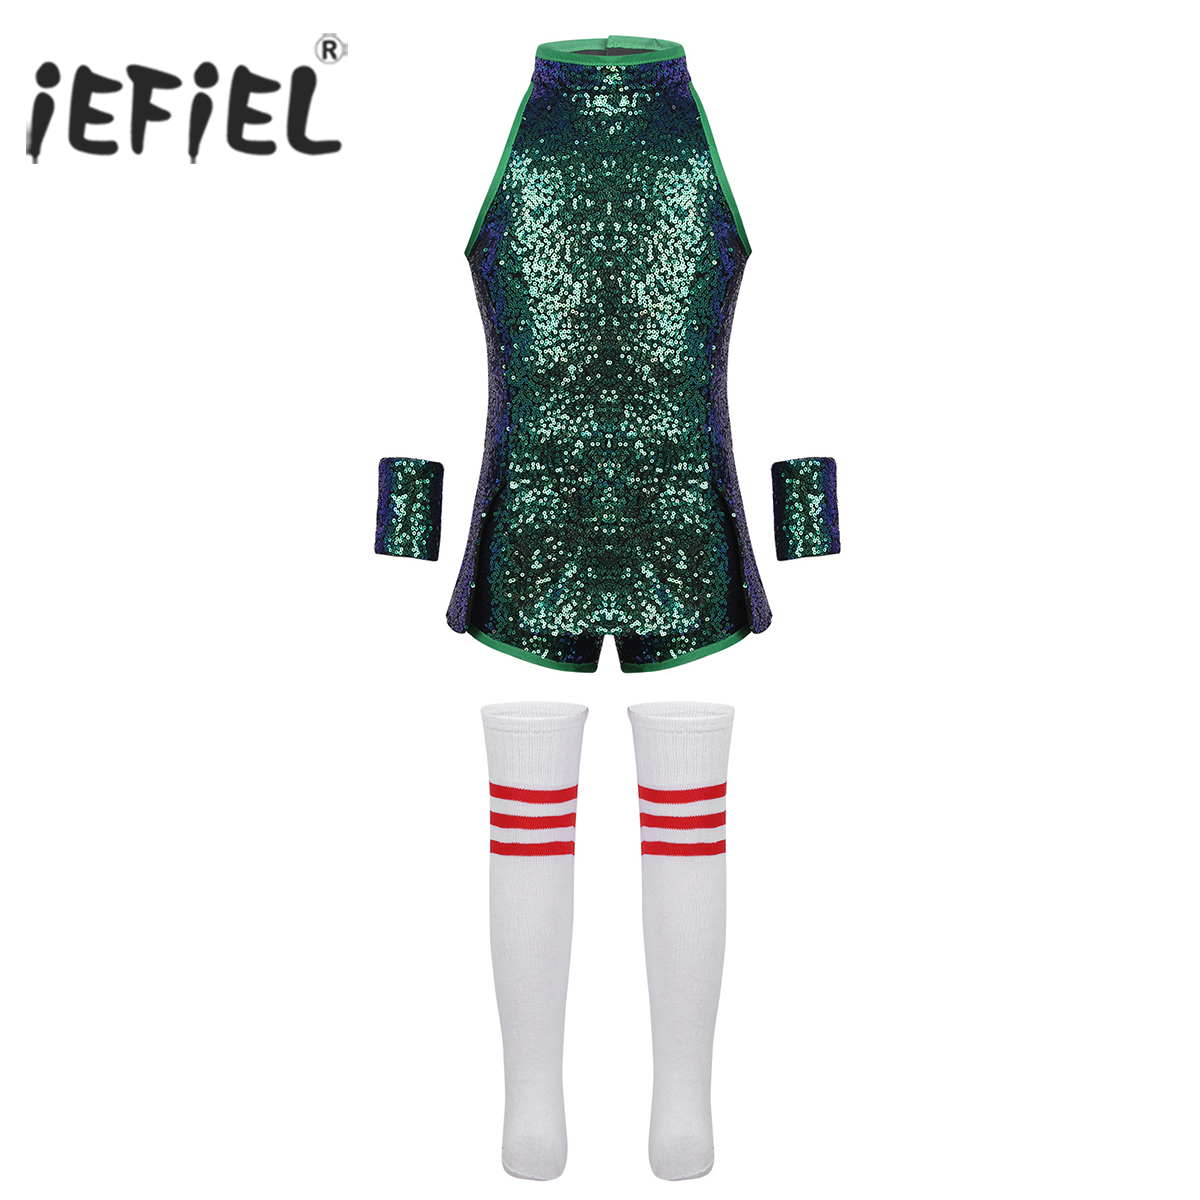 Children Girls Kid Dance Wear Hip-hop Jazz Stage Dance Costume Street Dancing Shiny Sequins Tank Top with Shorts Socks Set